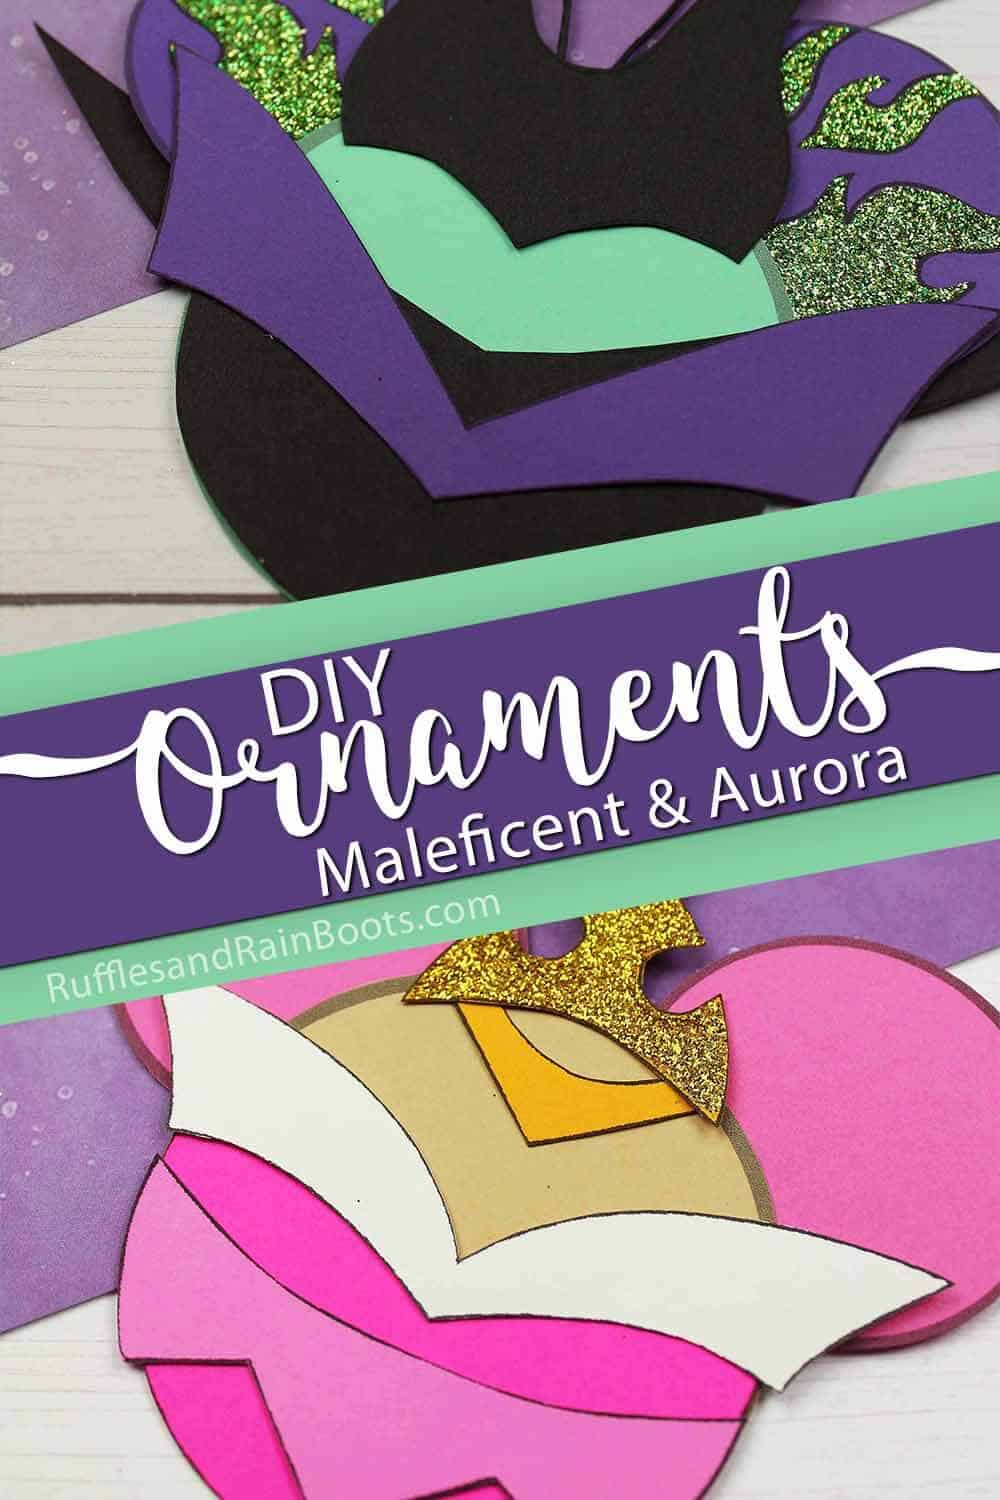 photo collage of mal and aurora ornaments with text which reads diy ornaments maleficent and aurora